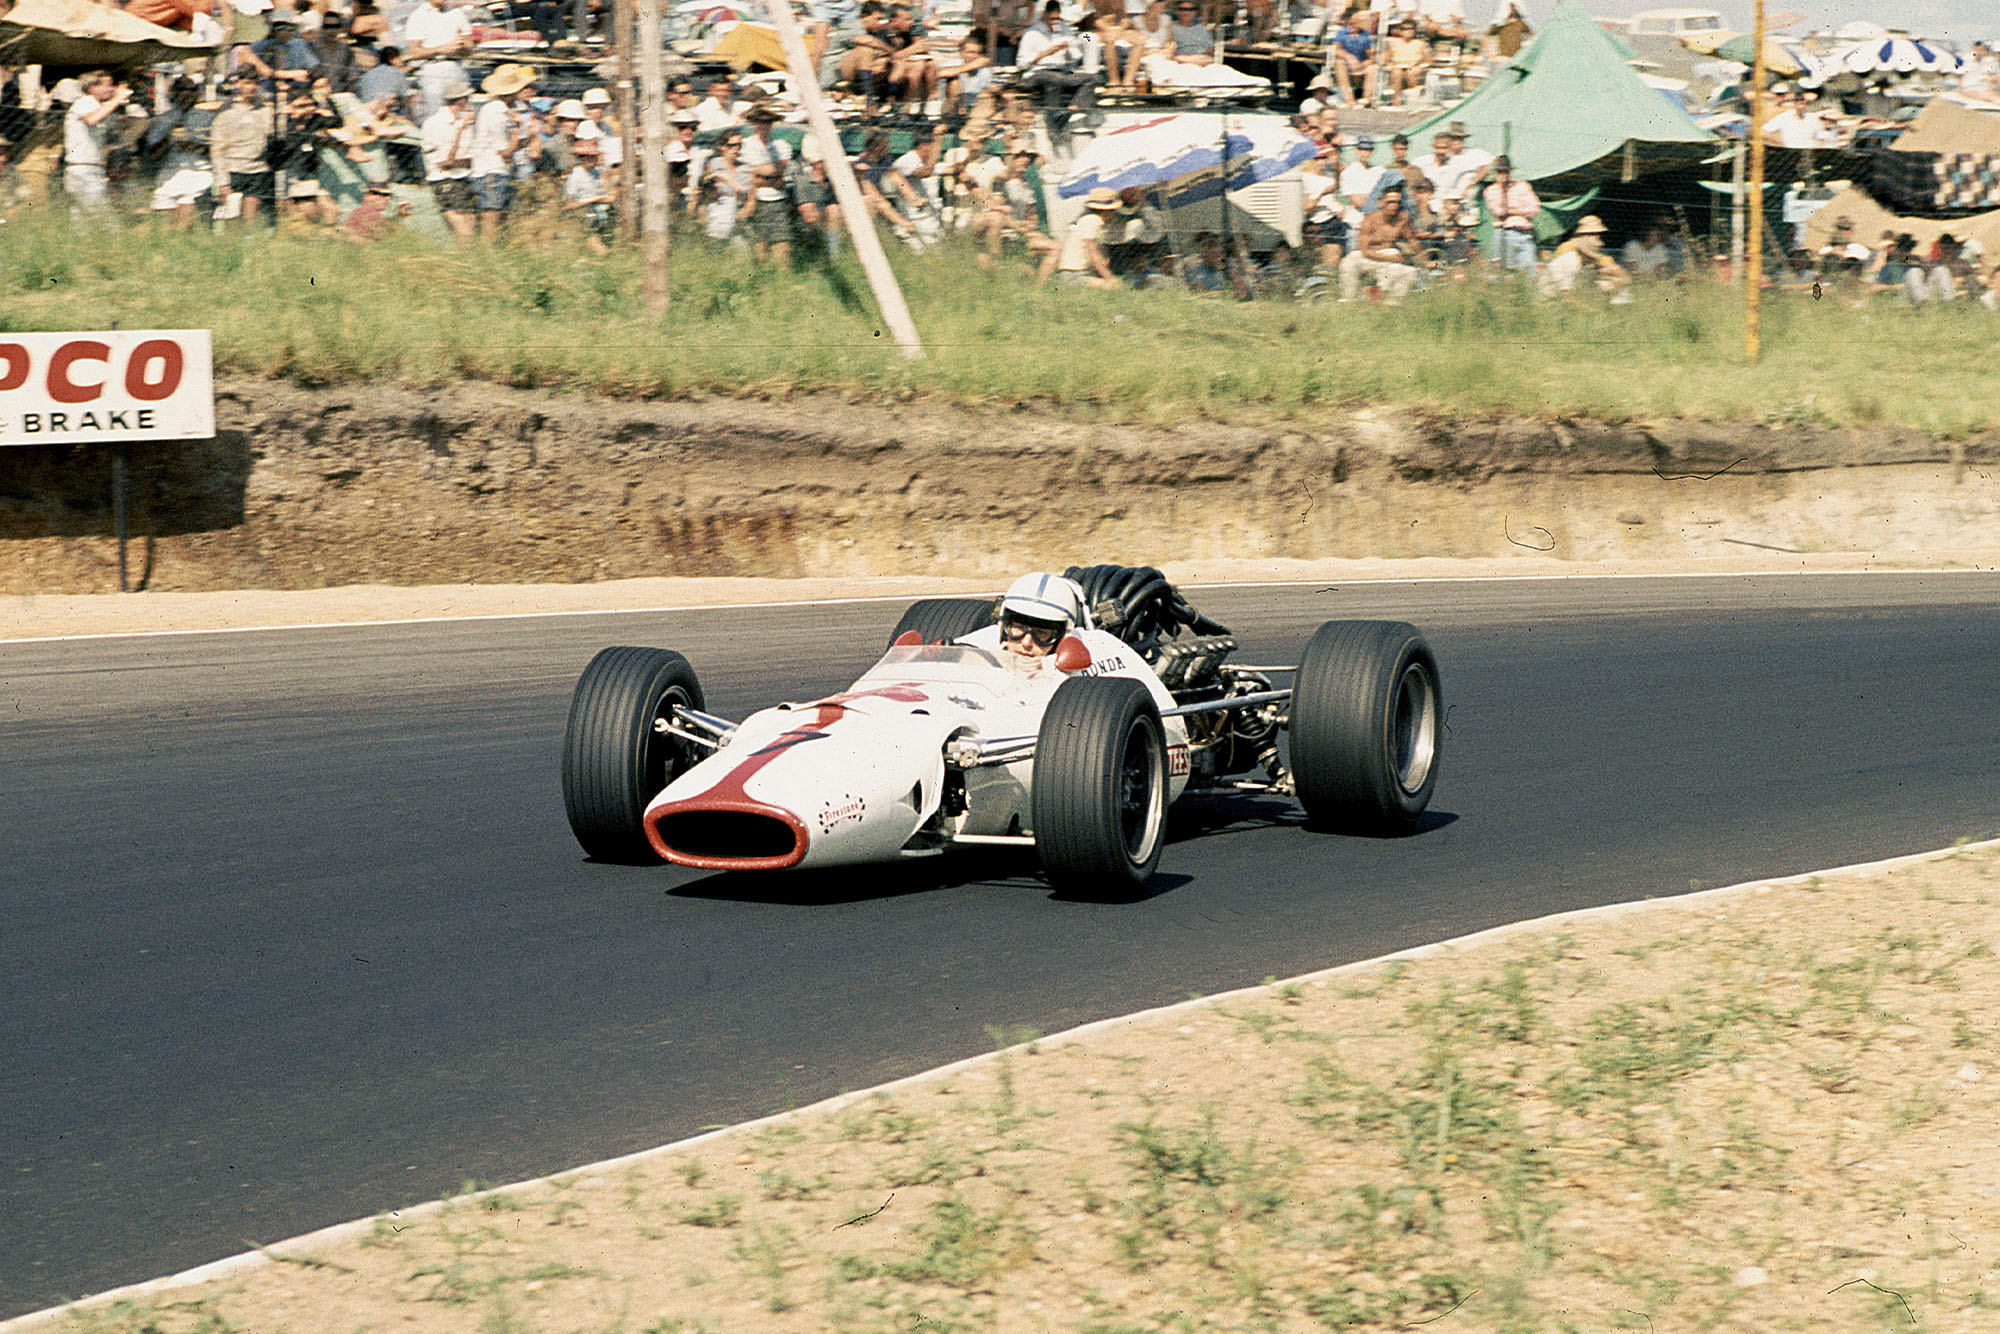 John Surtees (Honda RA300).